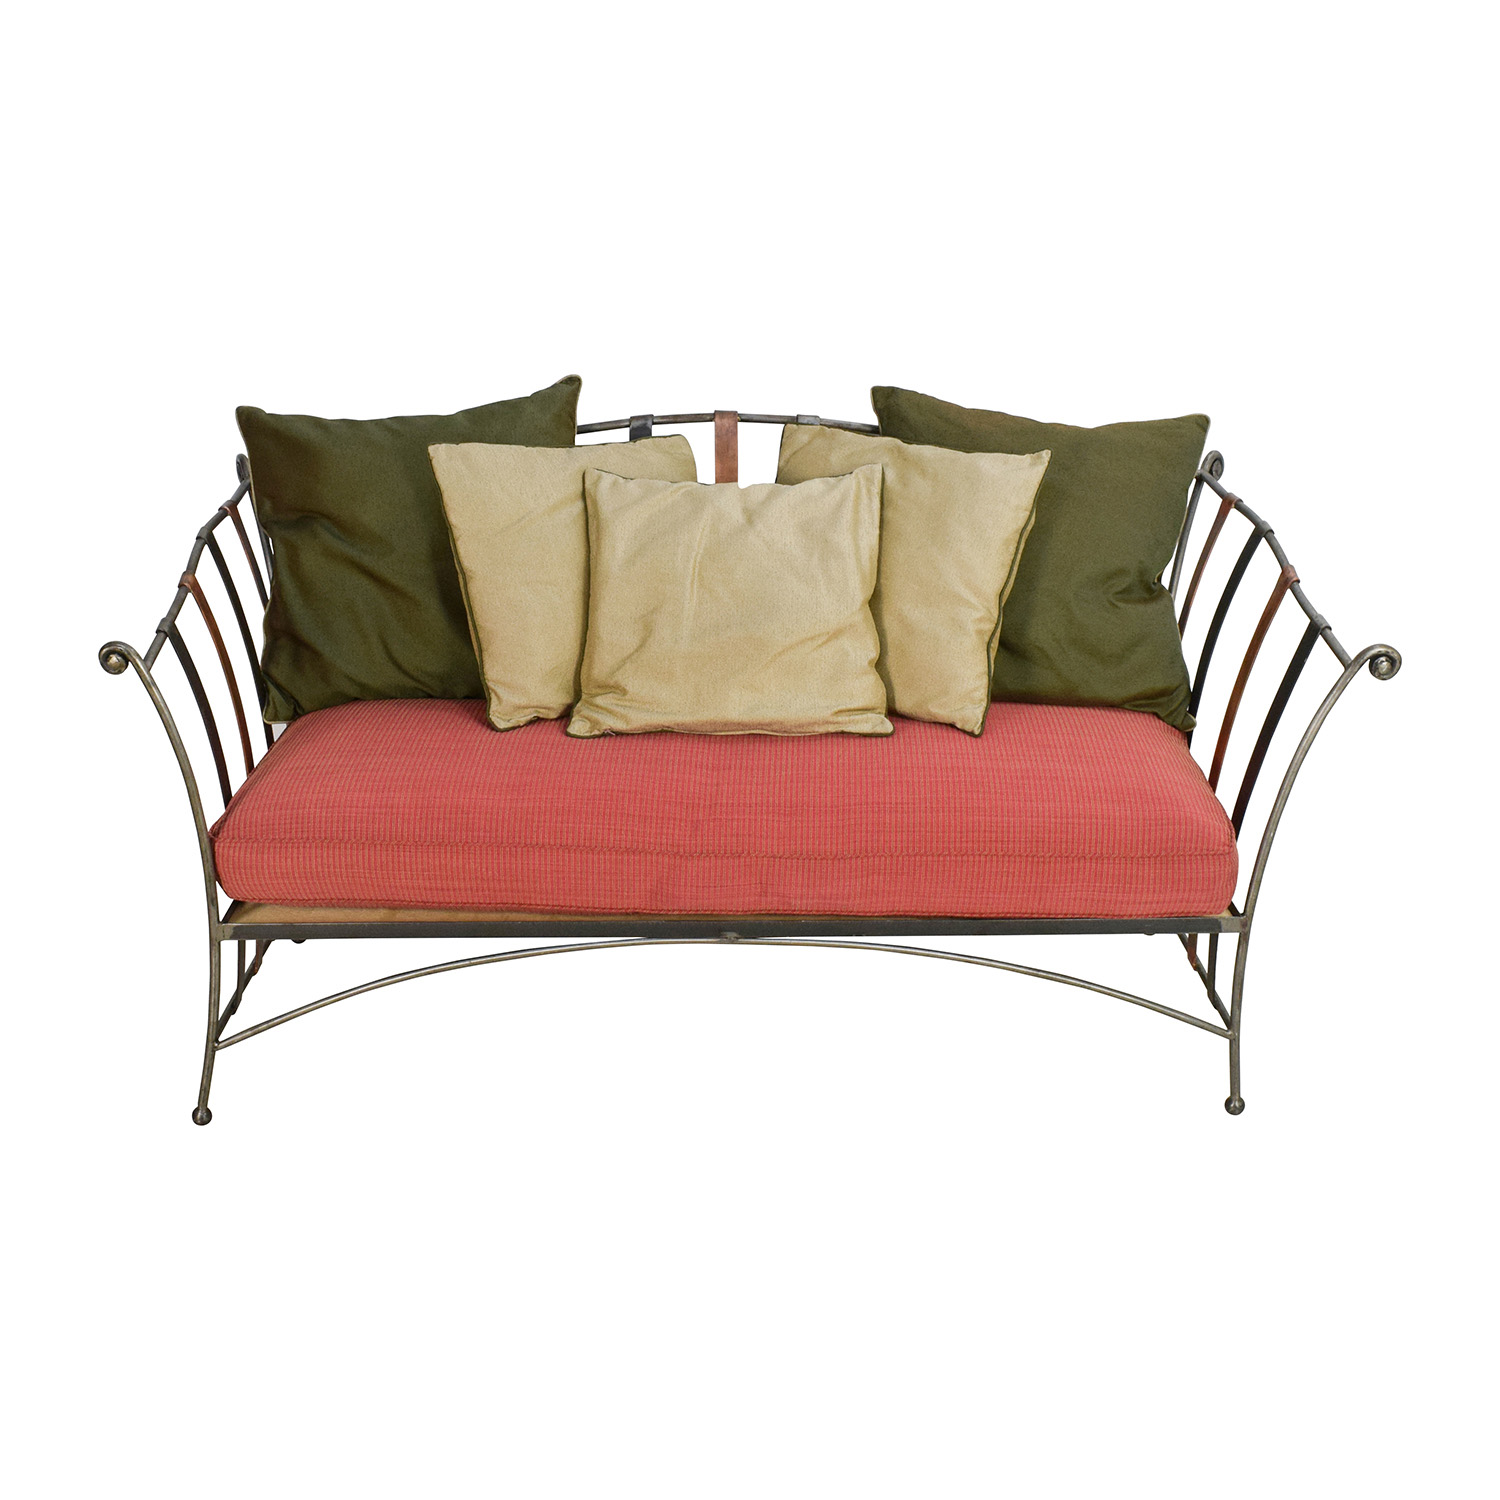 Made Sofa Shop 90 Off Custom Made Wrought Iron Daybed Sofa With Silk Pillows Sofas